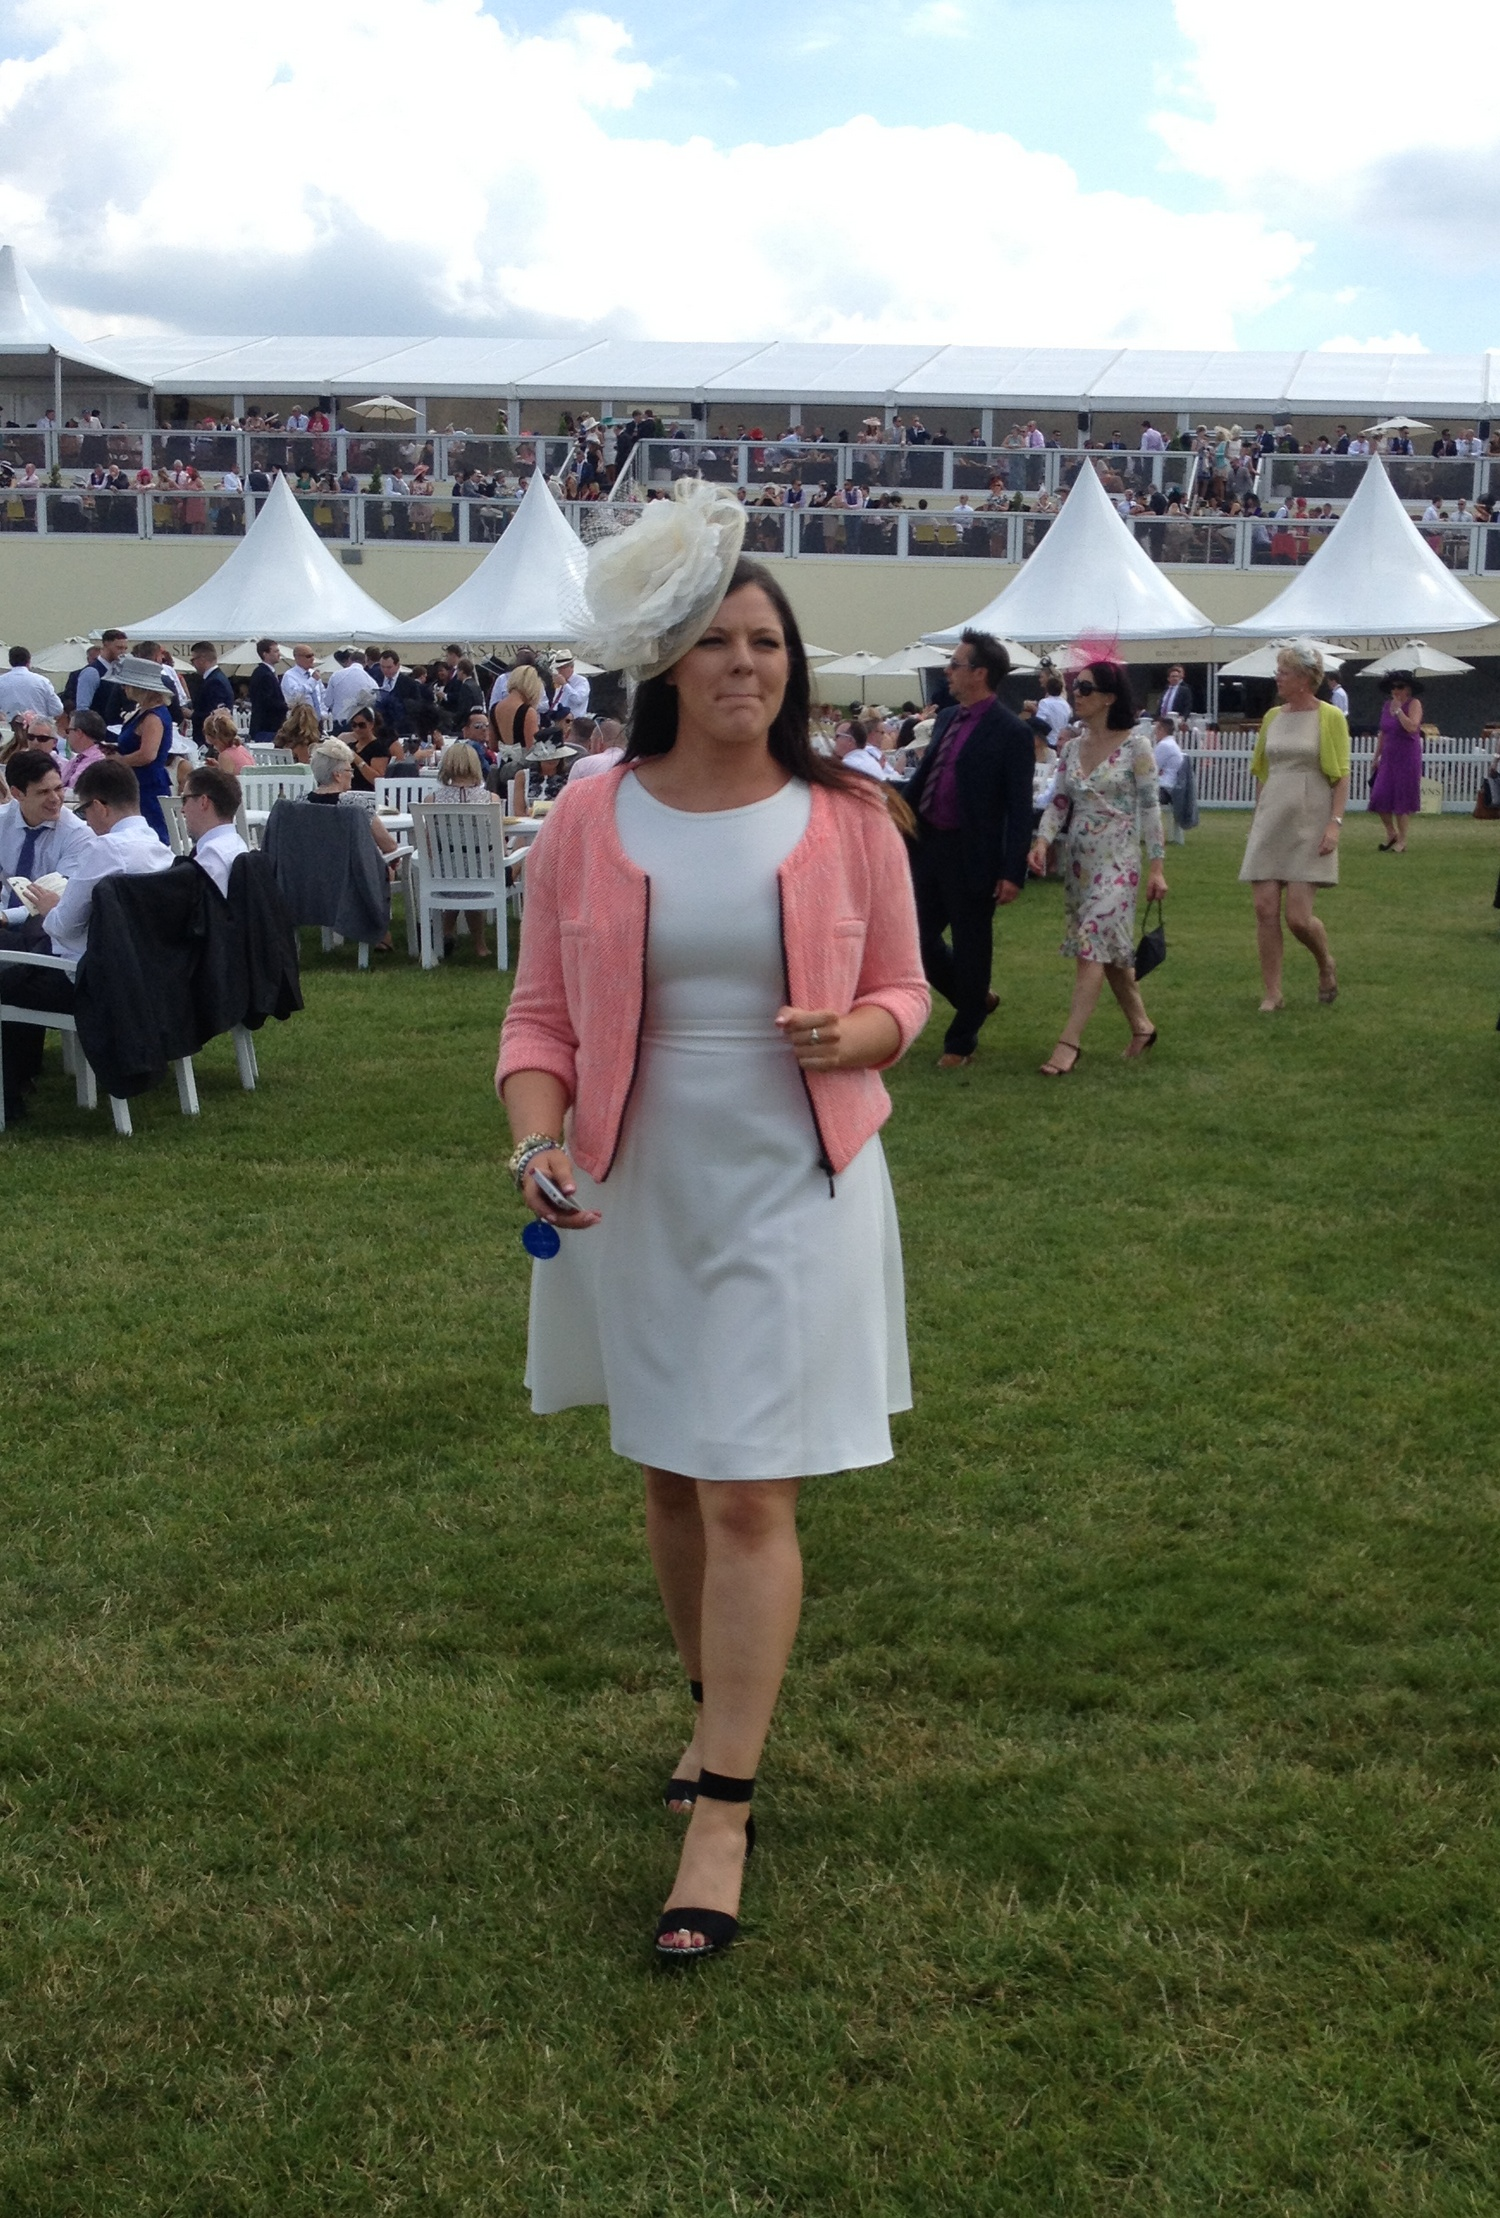 Bagstowear_RoyalAscot_Cream_Shades_2014